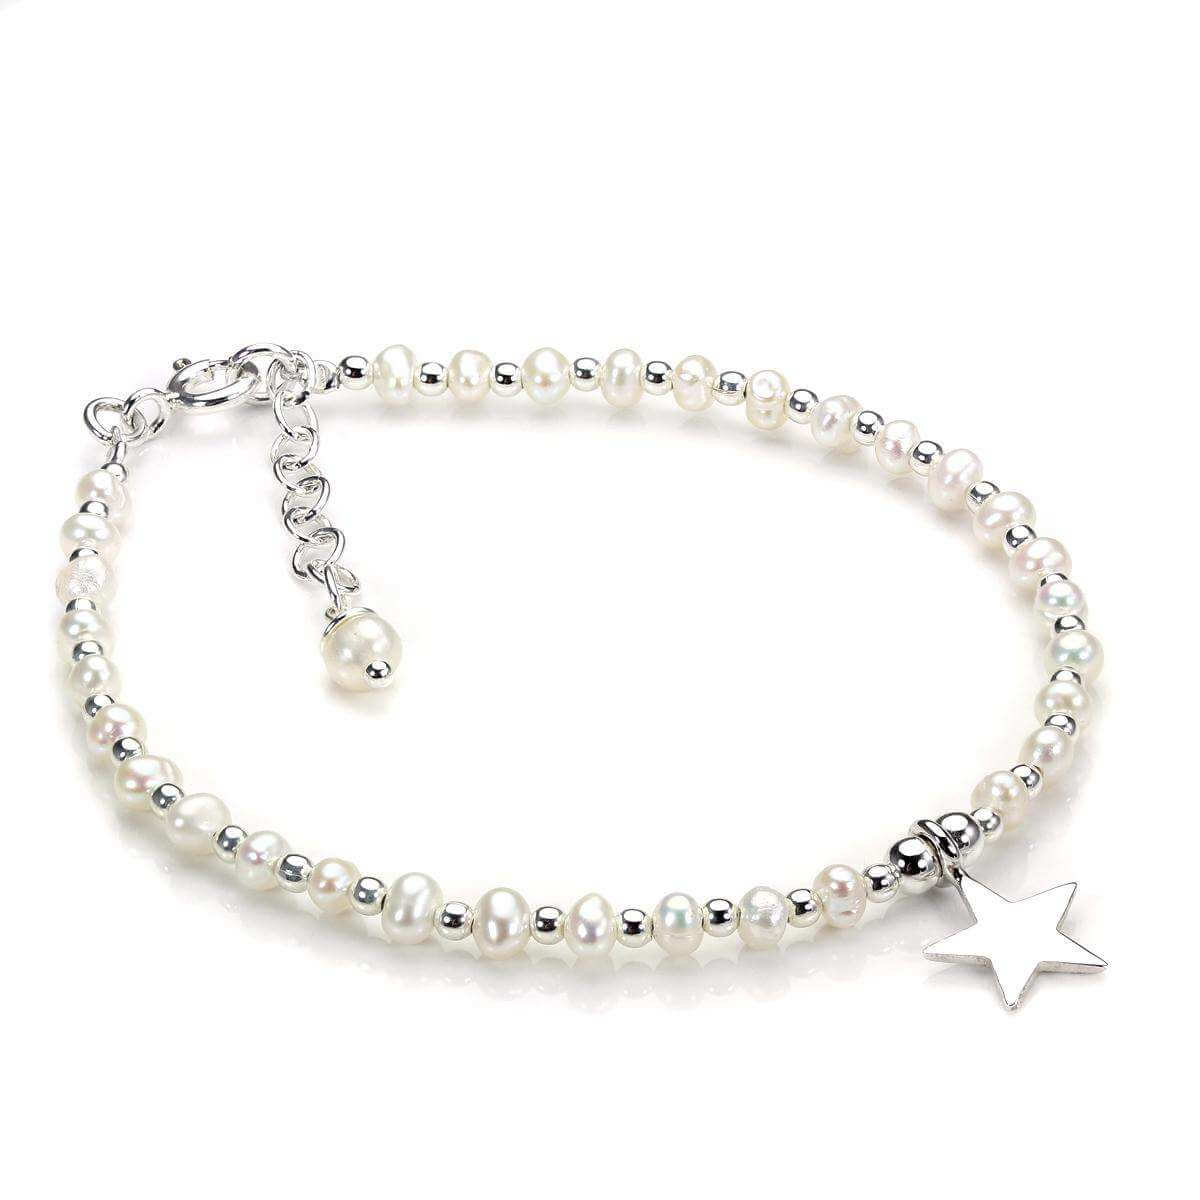 Sterling Silver & White Freshwater Pearl Bracelet with Star Charm